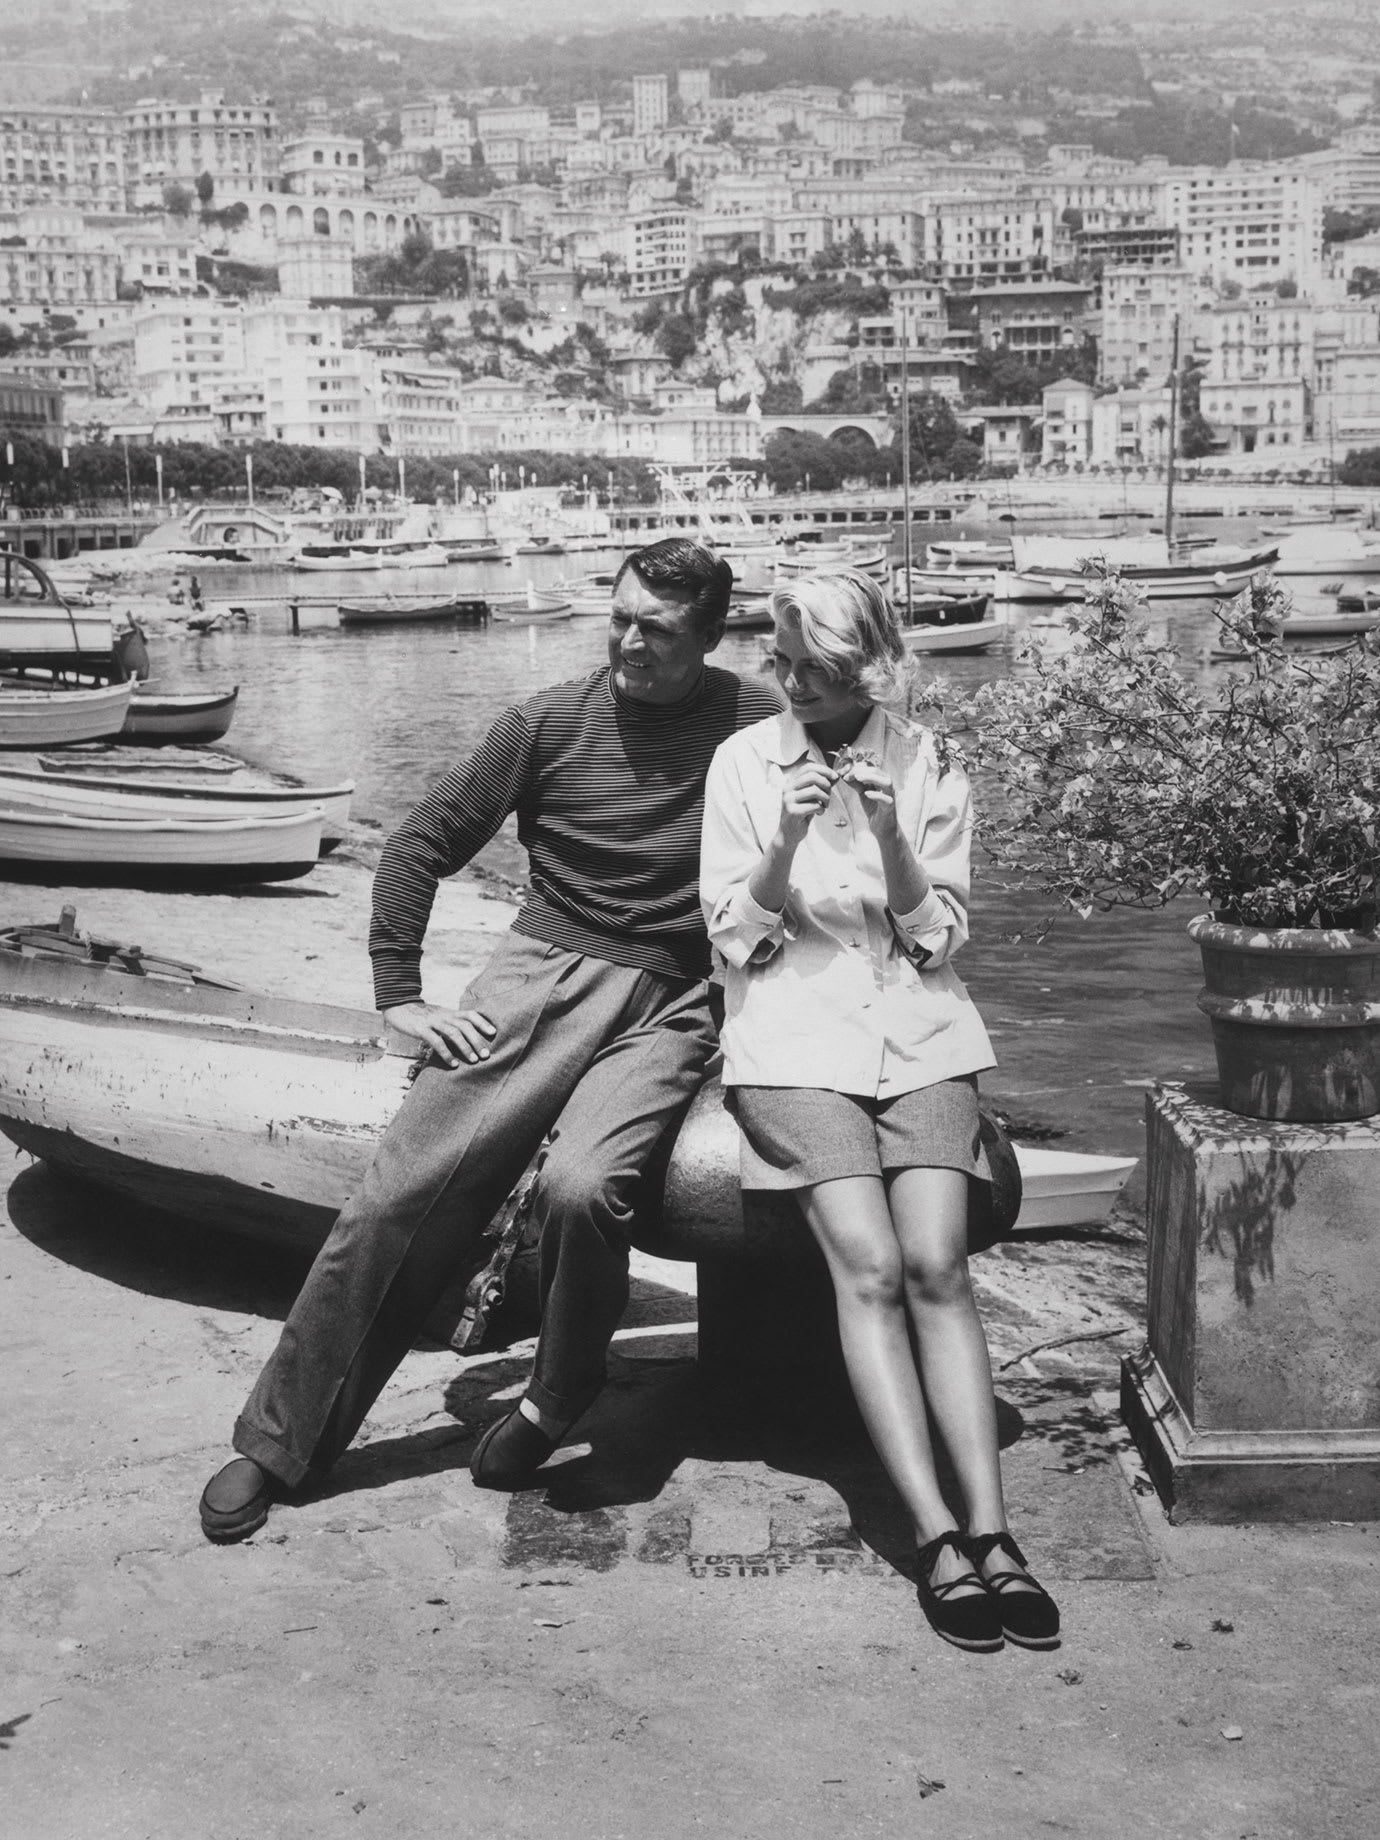 A vintage photograph of a man and a woman overlooking the french riviera.